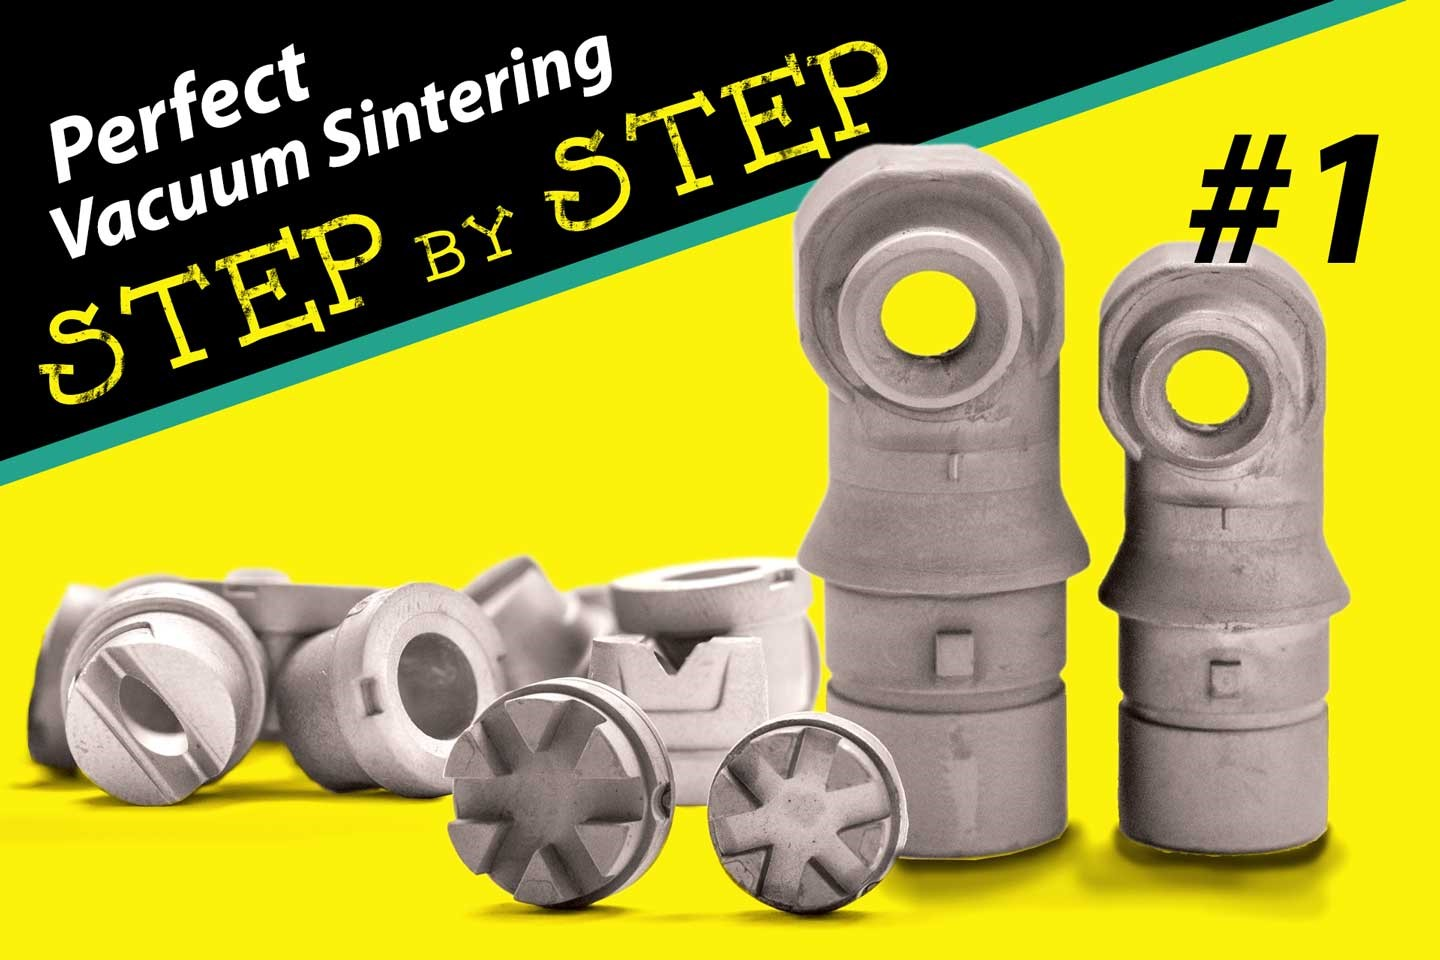 Perfect vacuum sintering step by step #1